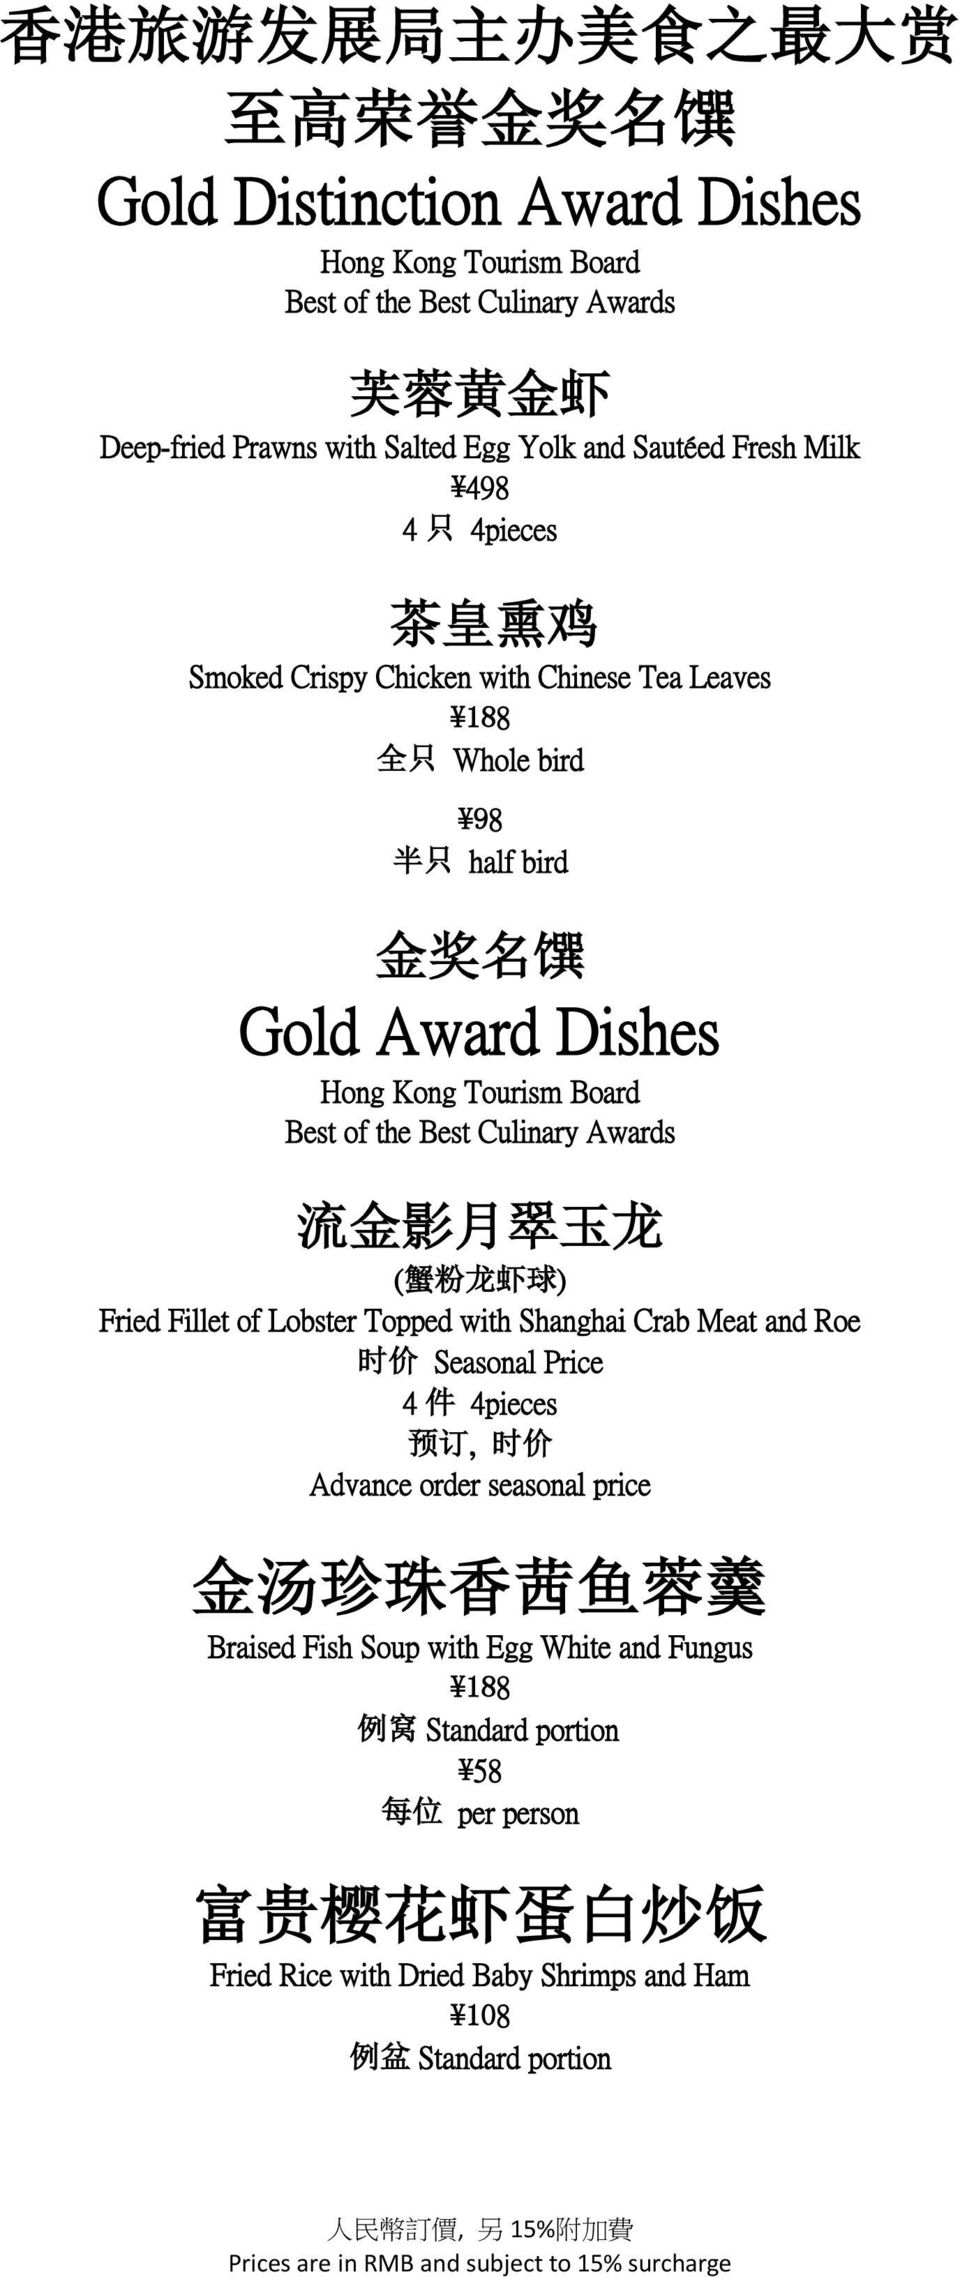 of the Best Culinary Awards 流 金 影 月 翠 玉 龙 ( 蟹 粉 龙 虾 球 ) Fried Fillet of Lobster Topped with Shanghai Crab Meat and Roe 时 价 Seasonal Price 4 件 4pieces 预 订, 时 价 Advance order seasonal